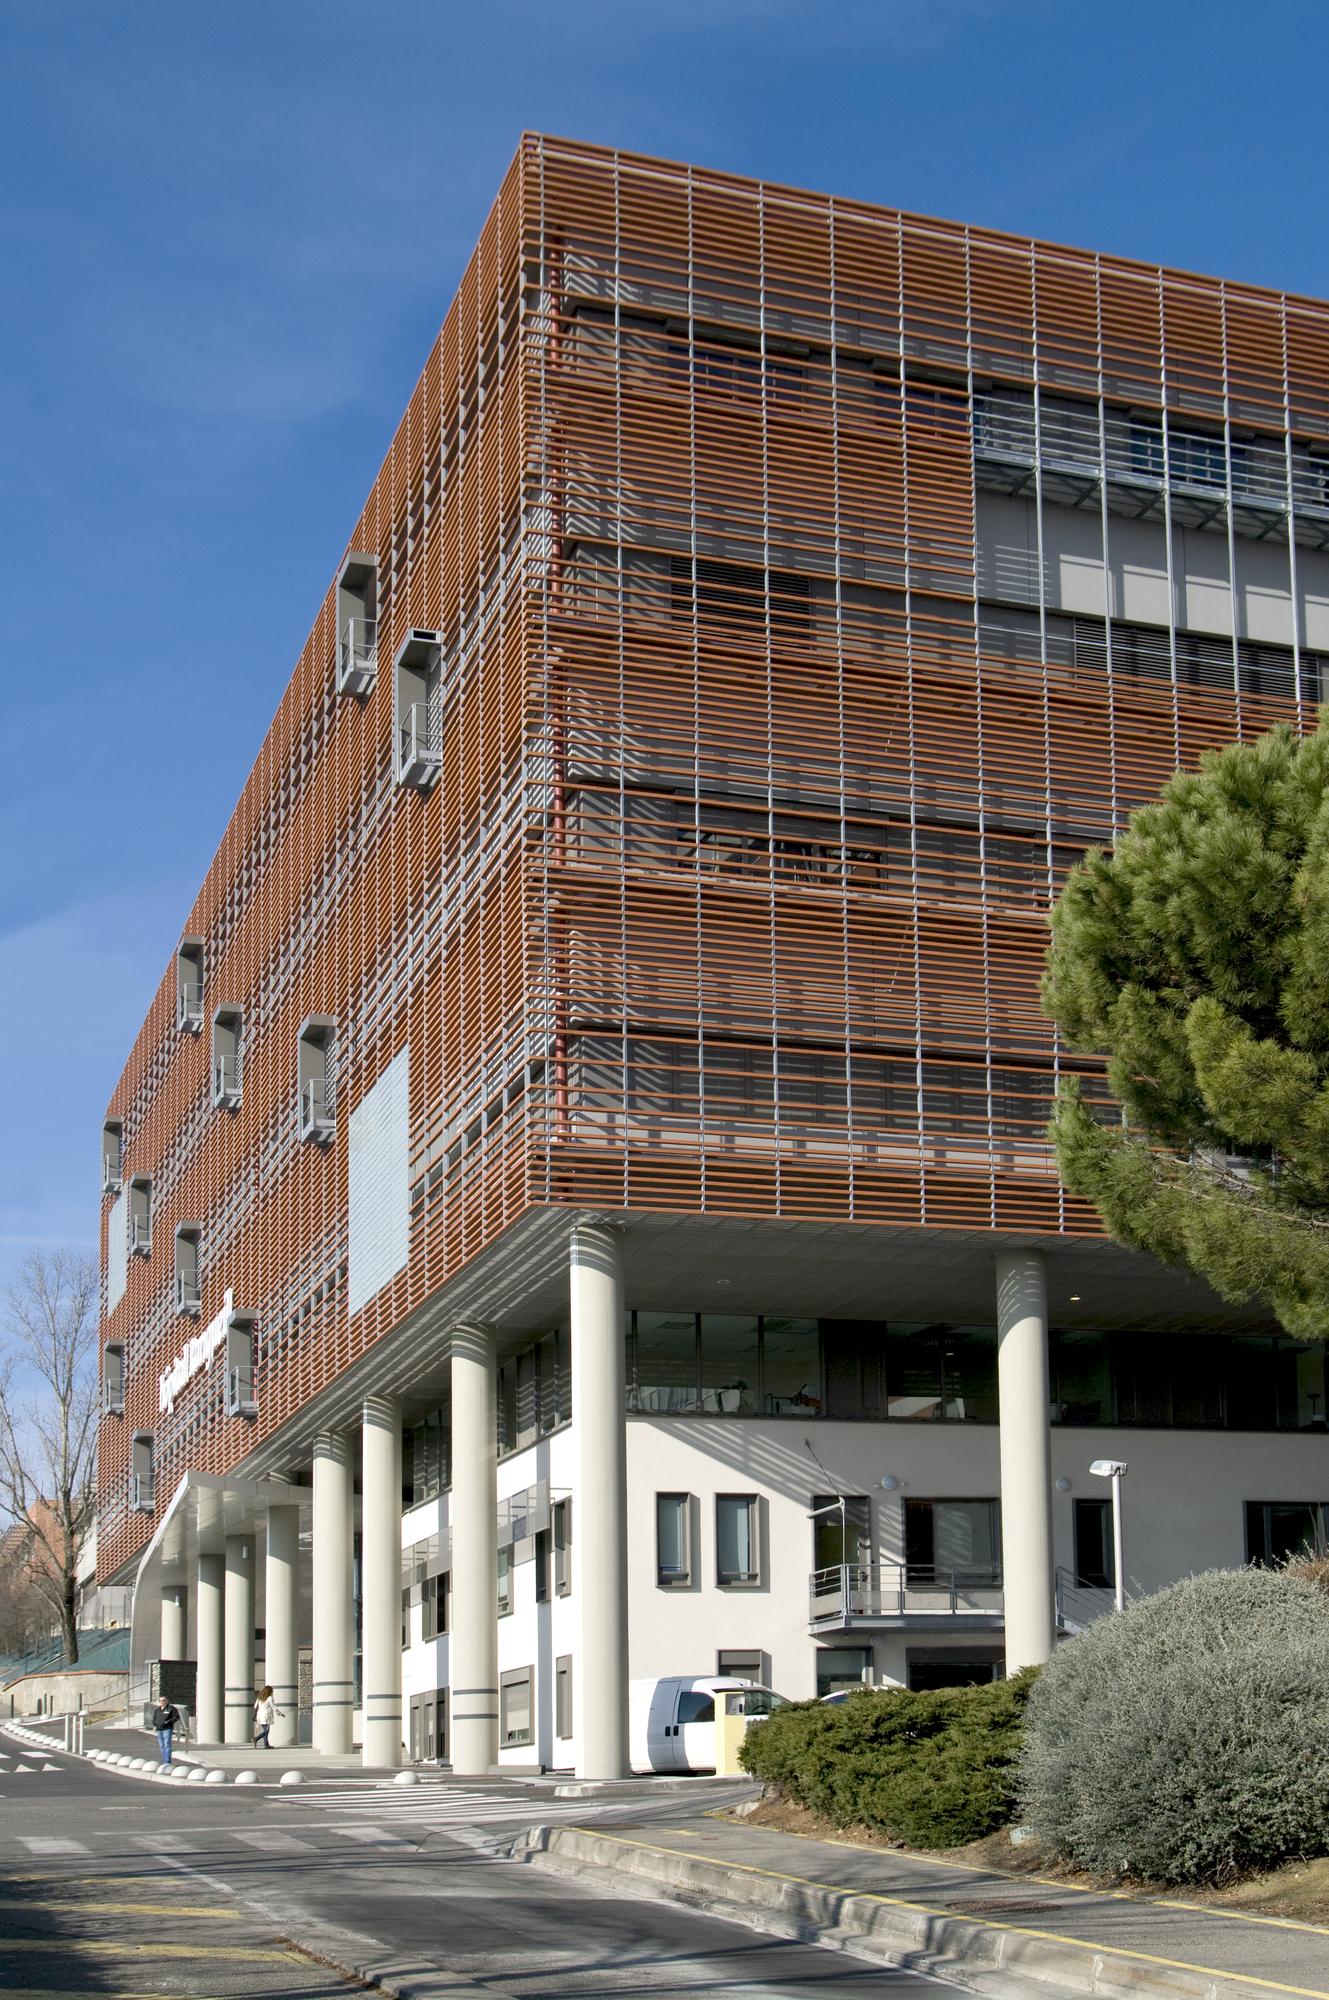 Toulouse Rangueil Hospital / Art&Build Architects, Courtesy of Art&Build